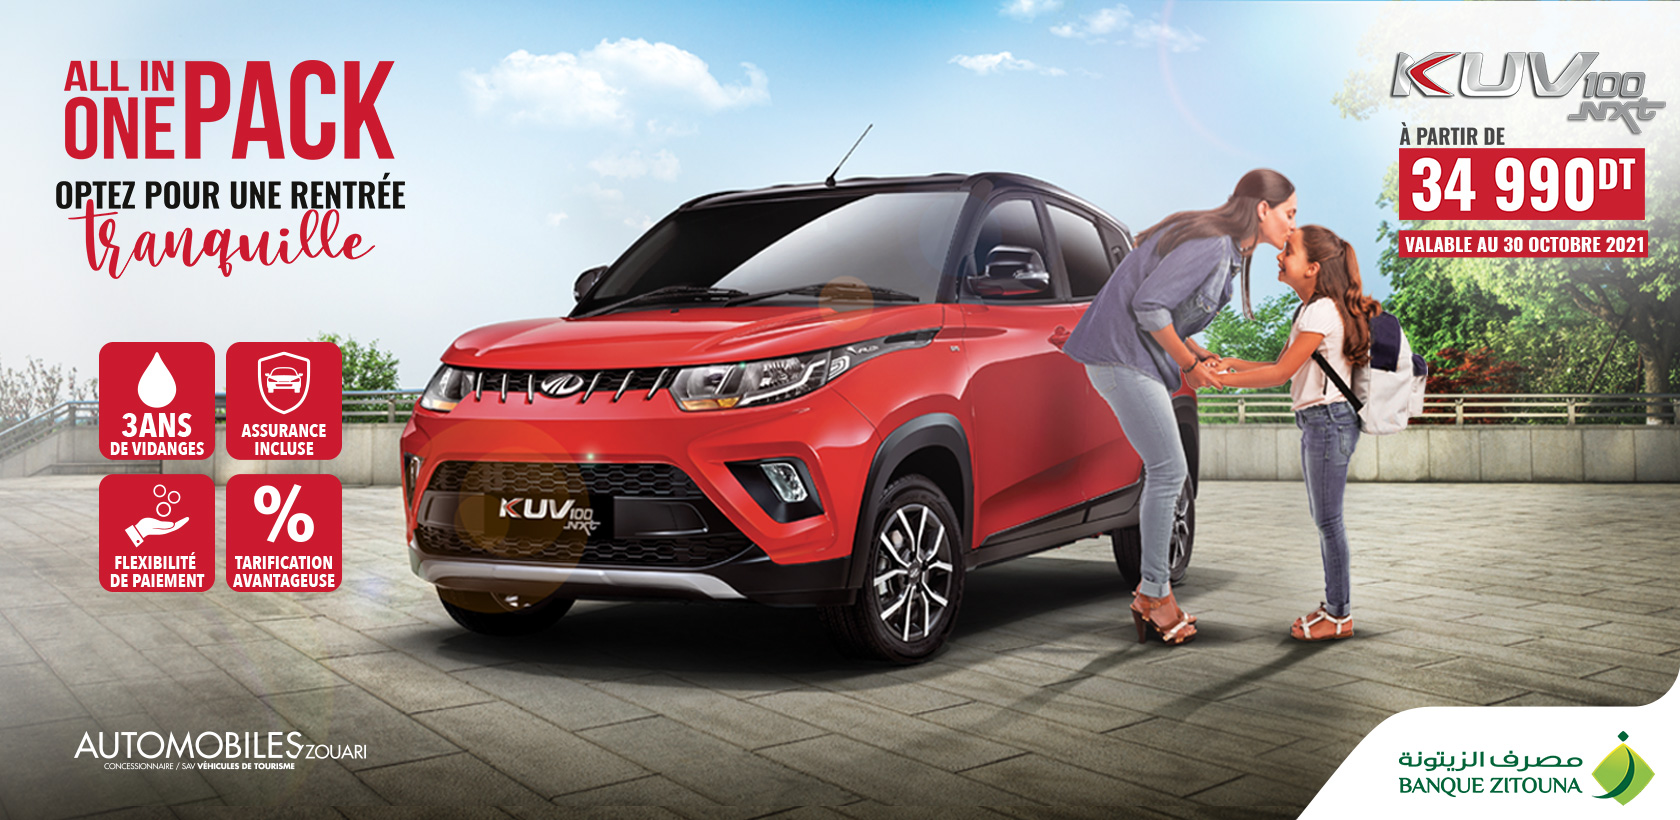 « Pack ALL IN ONE » chez Mahindra Tunisie